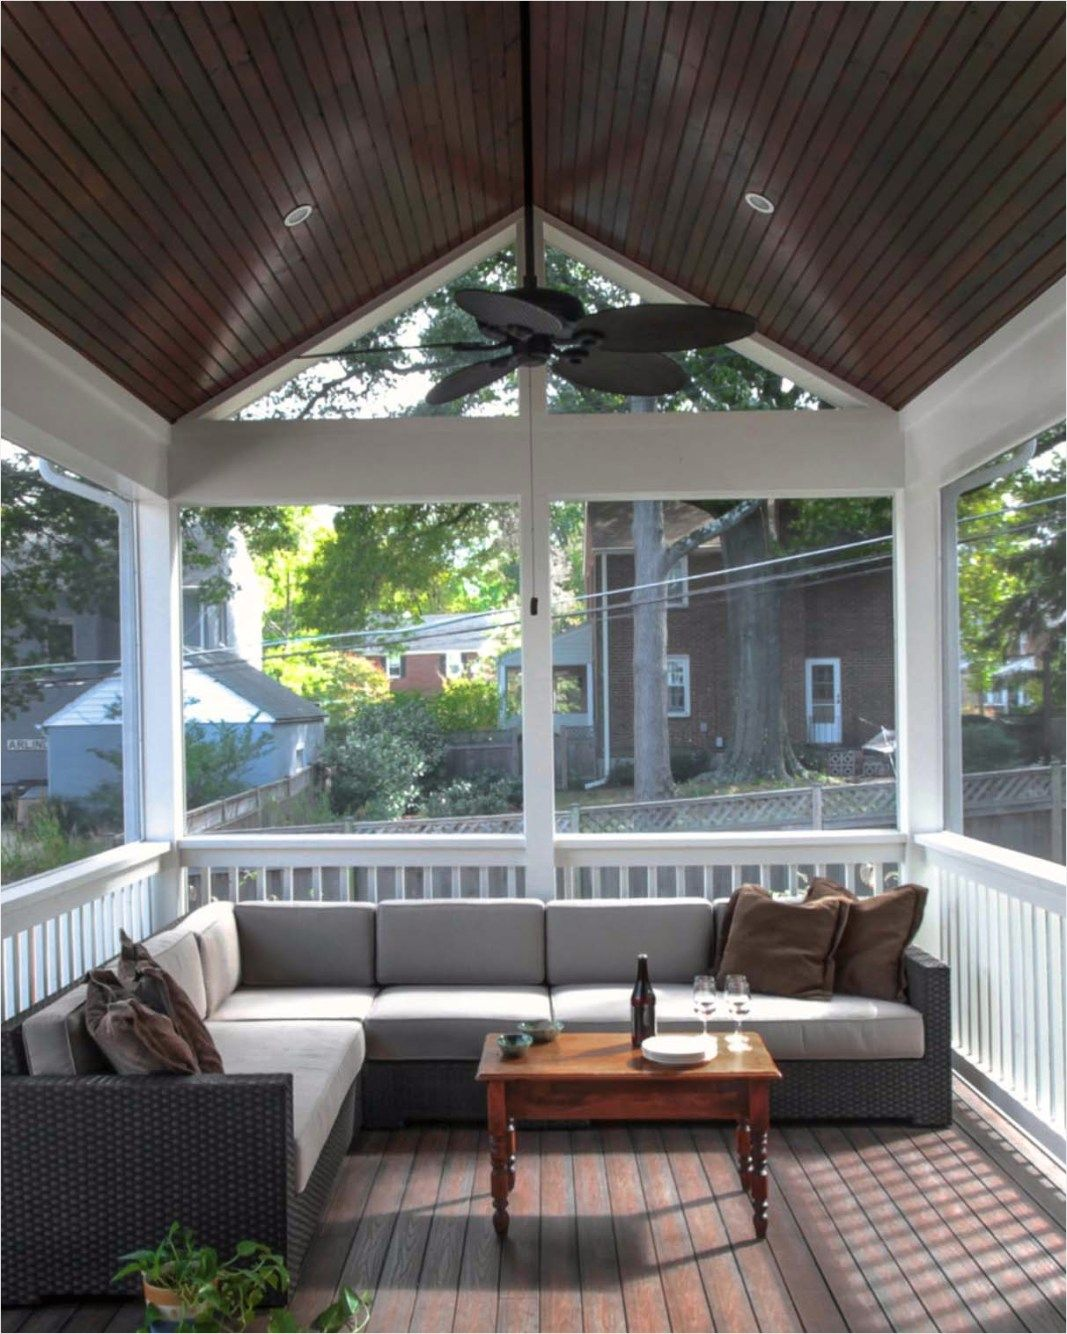 Patio Screening Ideas Dayboatnyc Home Ideas For You